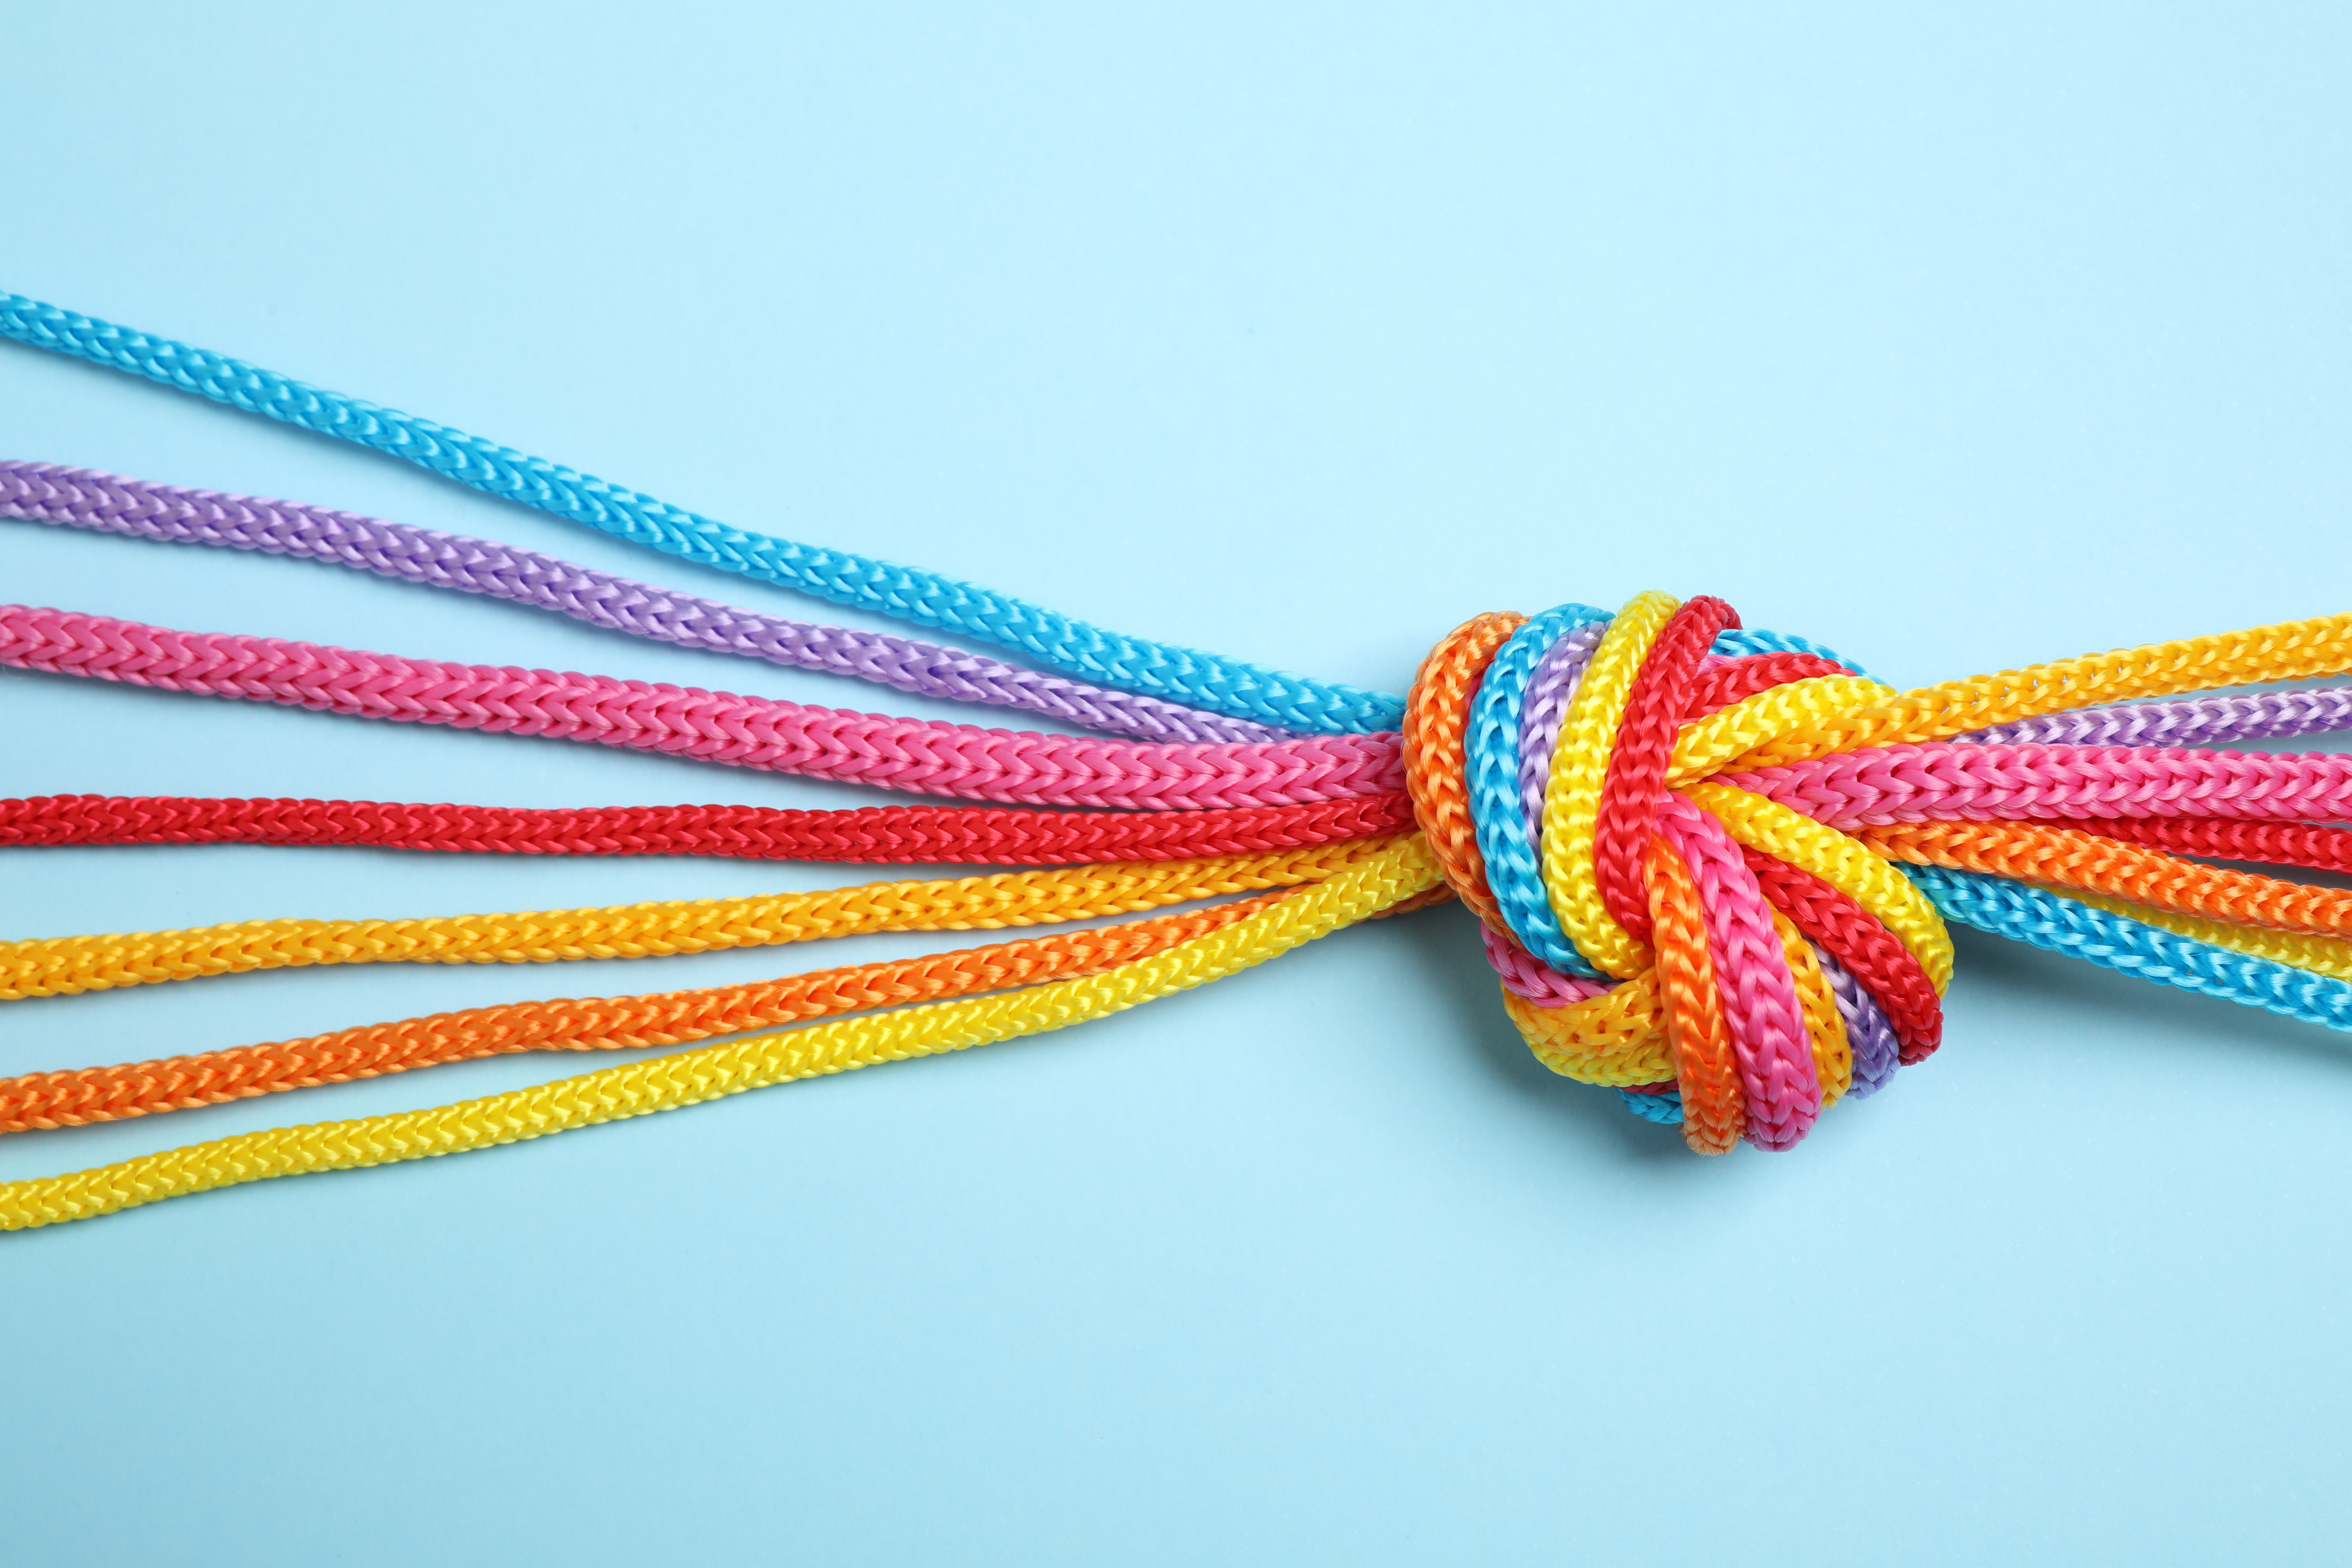 Colorful cords knotted together